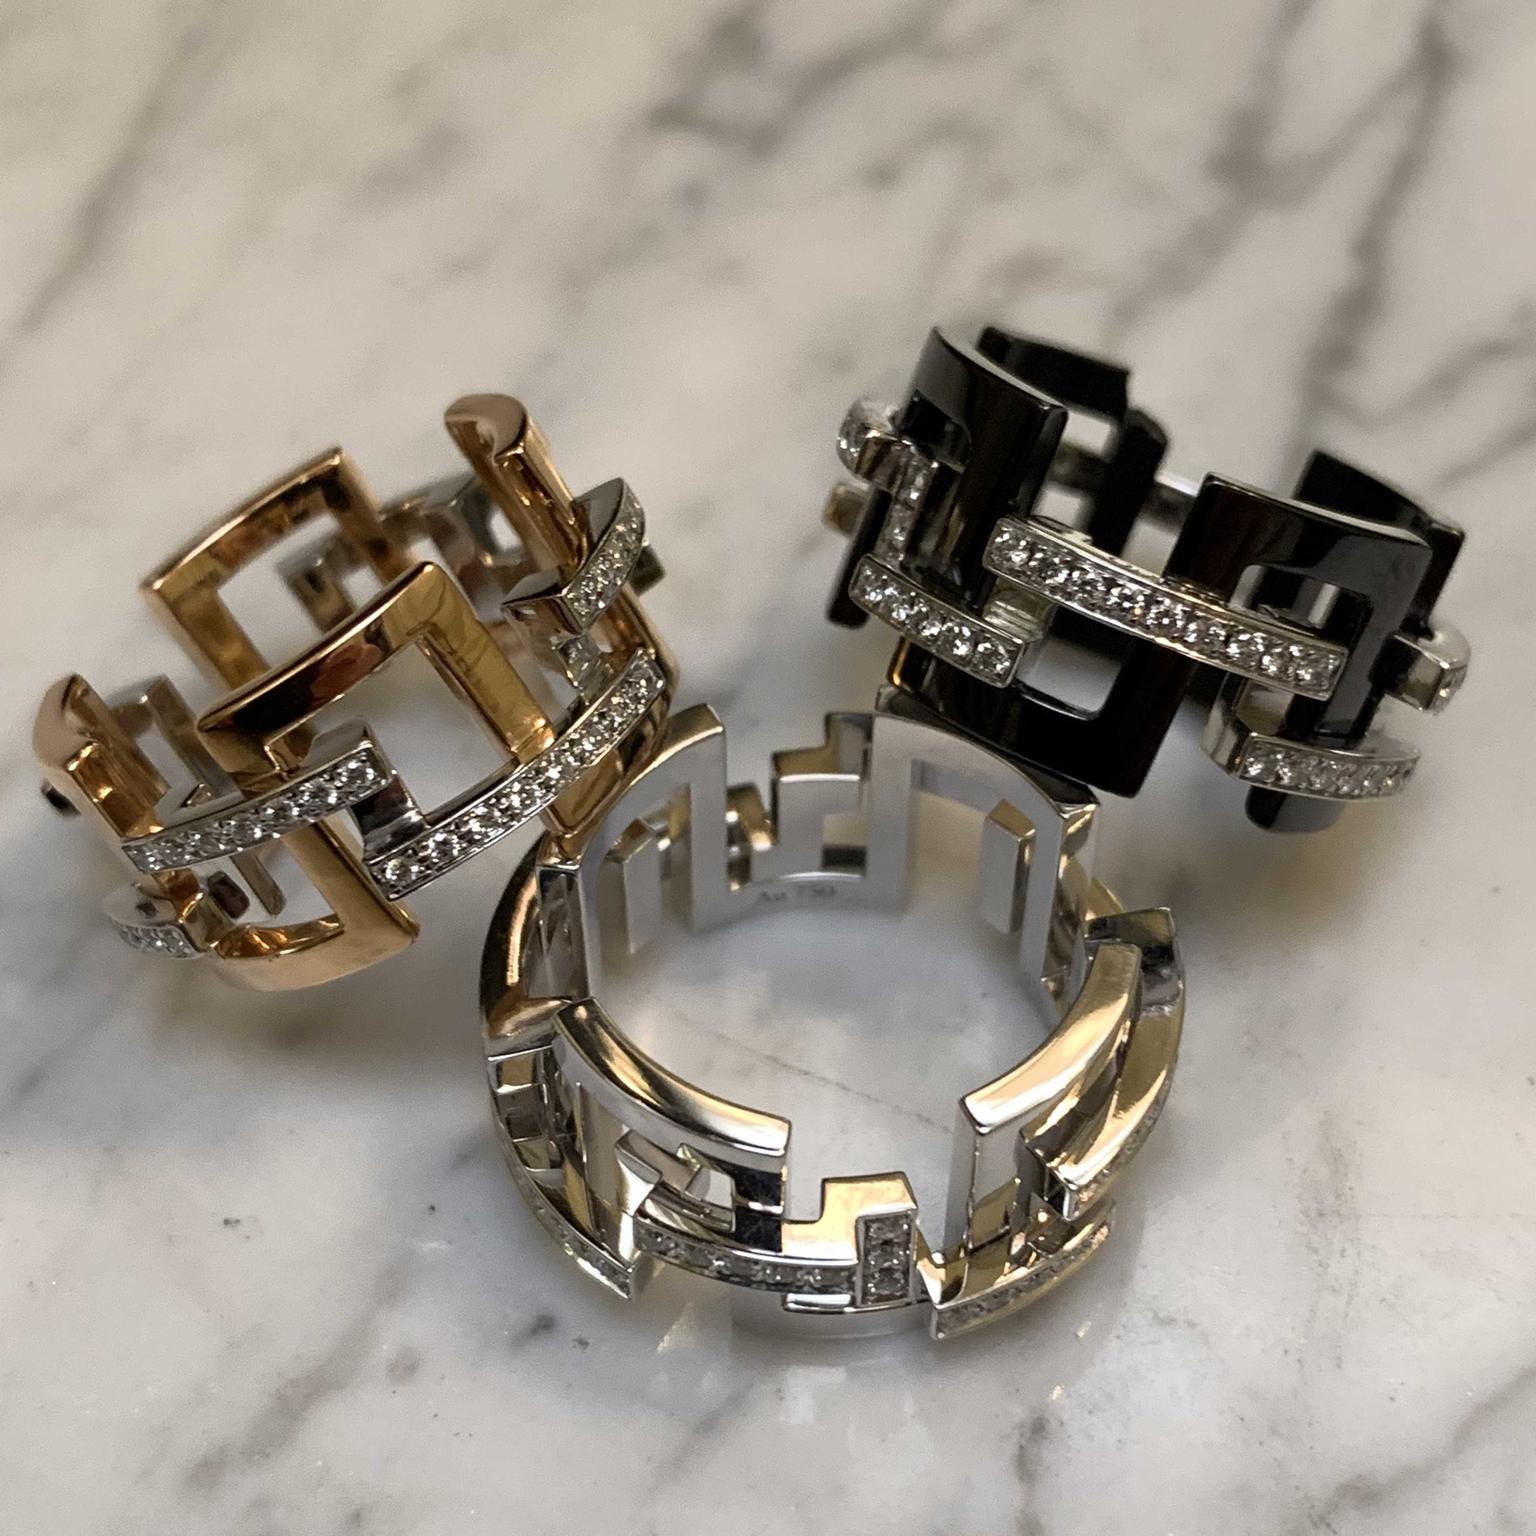 His and hers: gender fluid jewels for a new decade